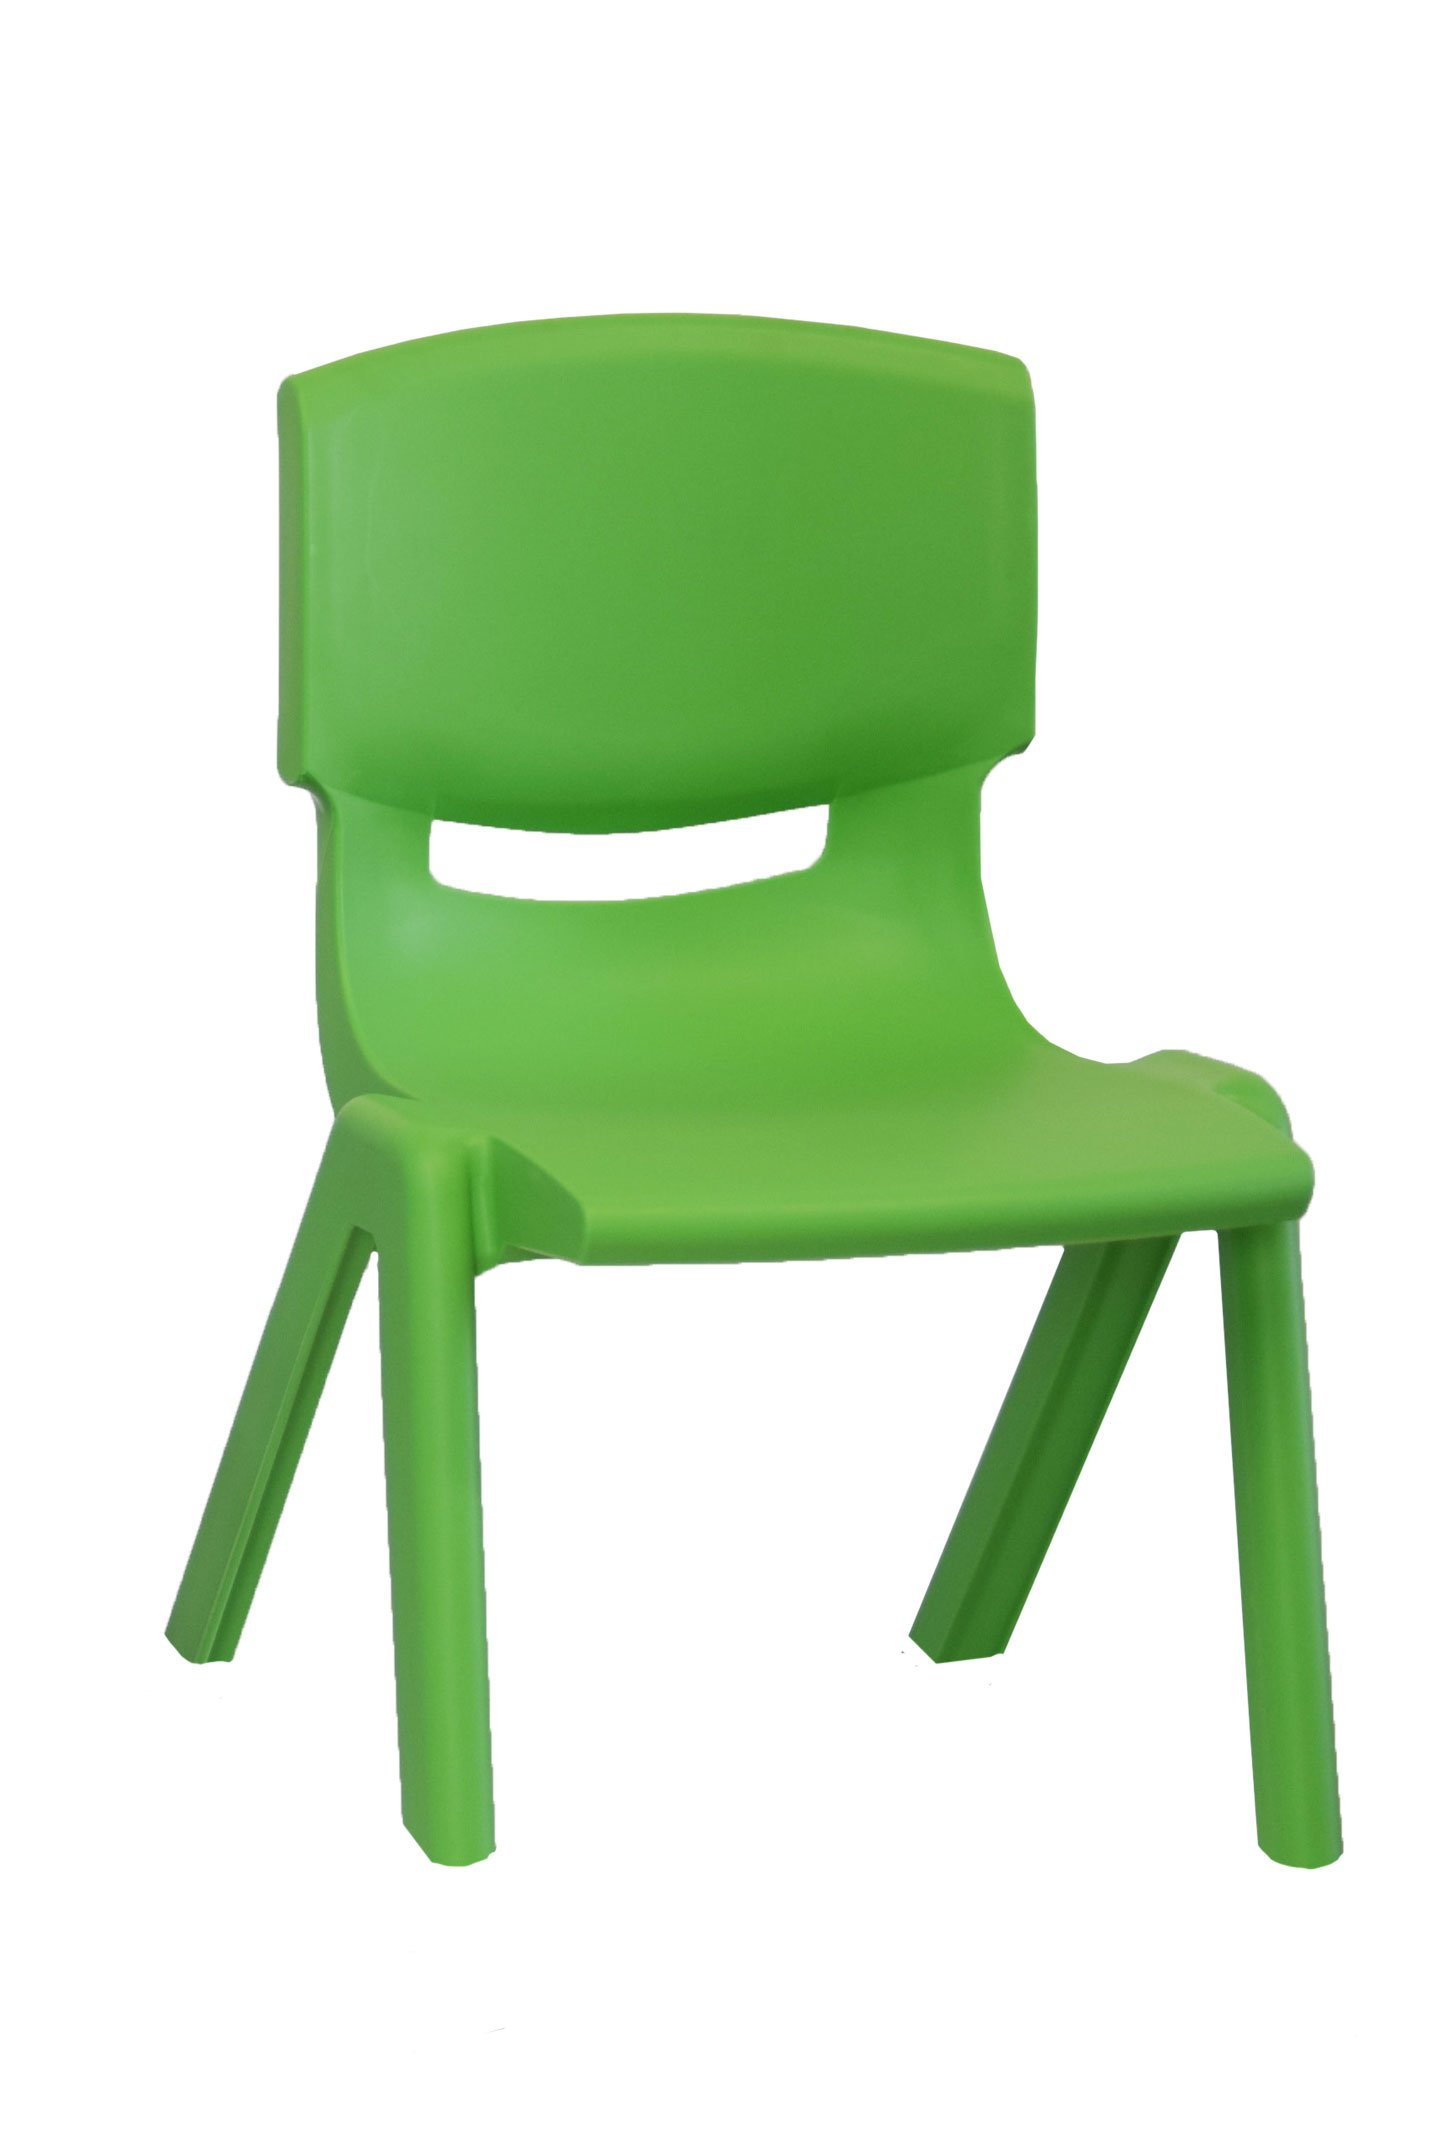 FXV Solid Plastic Chair, Green, Carton of 8